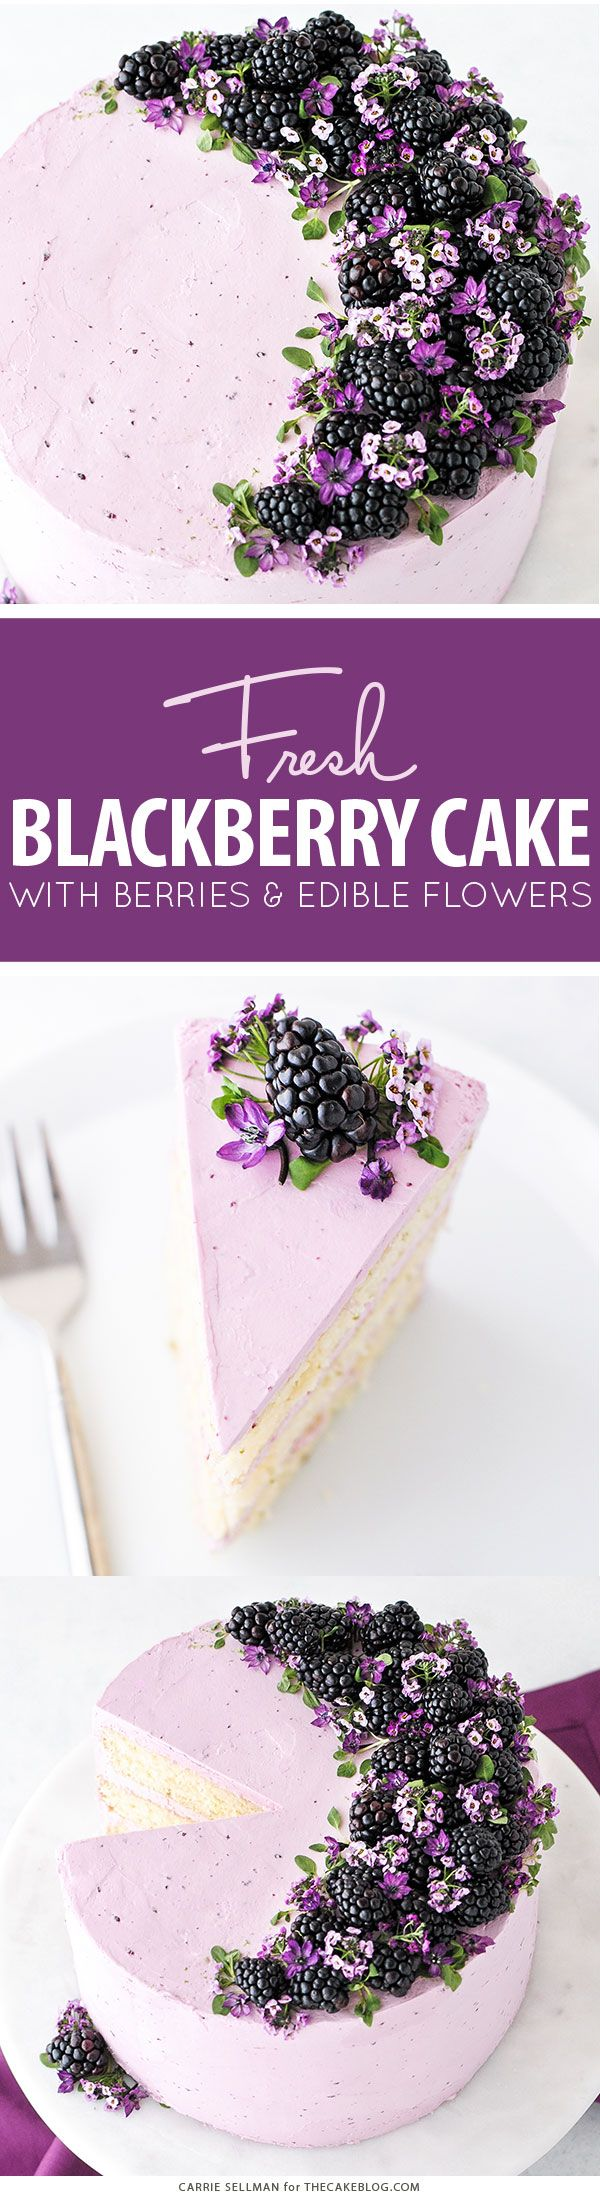 Blackberry Lime Cake - tender cake infused with lime zest, frosted with blackberry buttercream, topped withfresh blackberries and edible flowers | by Carrie Sellman for The Cake Blog | AD @bobsredmill BobsSpringBaking